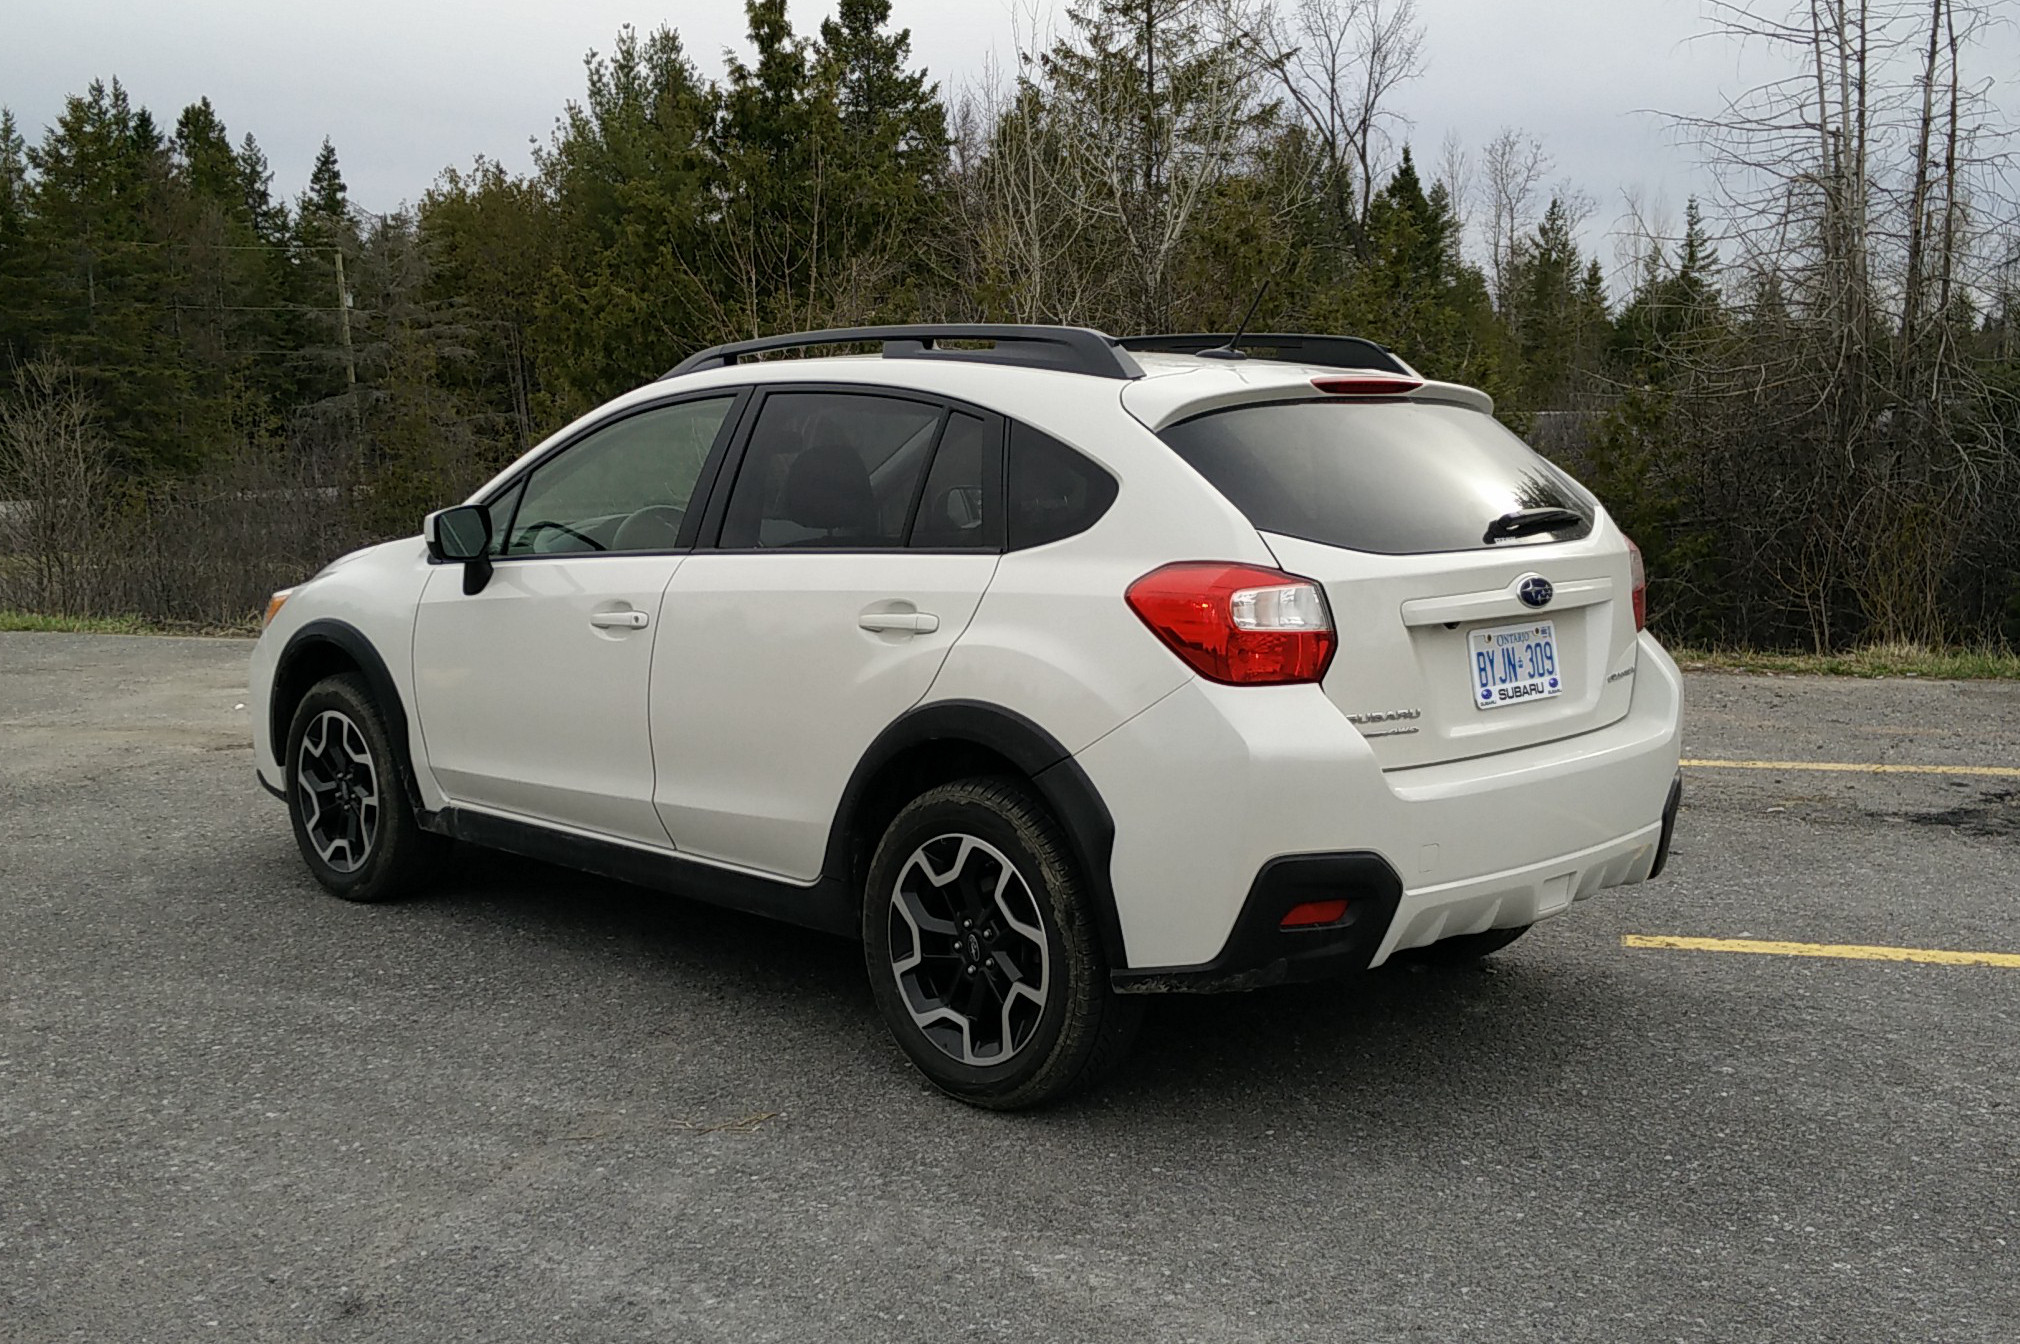 2016 subaru crosstrek 13 in addition Photo 01 additionally 2014 Subaru Brz Review And Quick Spin 124756 also Subaru Crosstrek Mpg likewise Jeep Mopar Concept Moab Easter Safari. on 2013 subaru crosstrek pricing